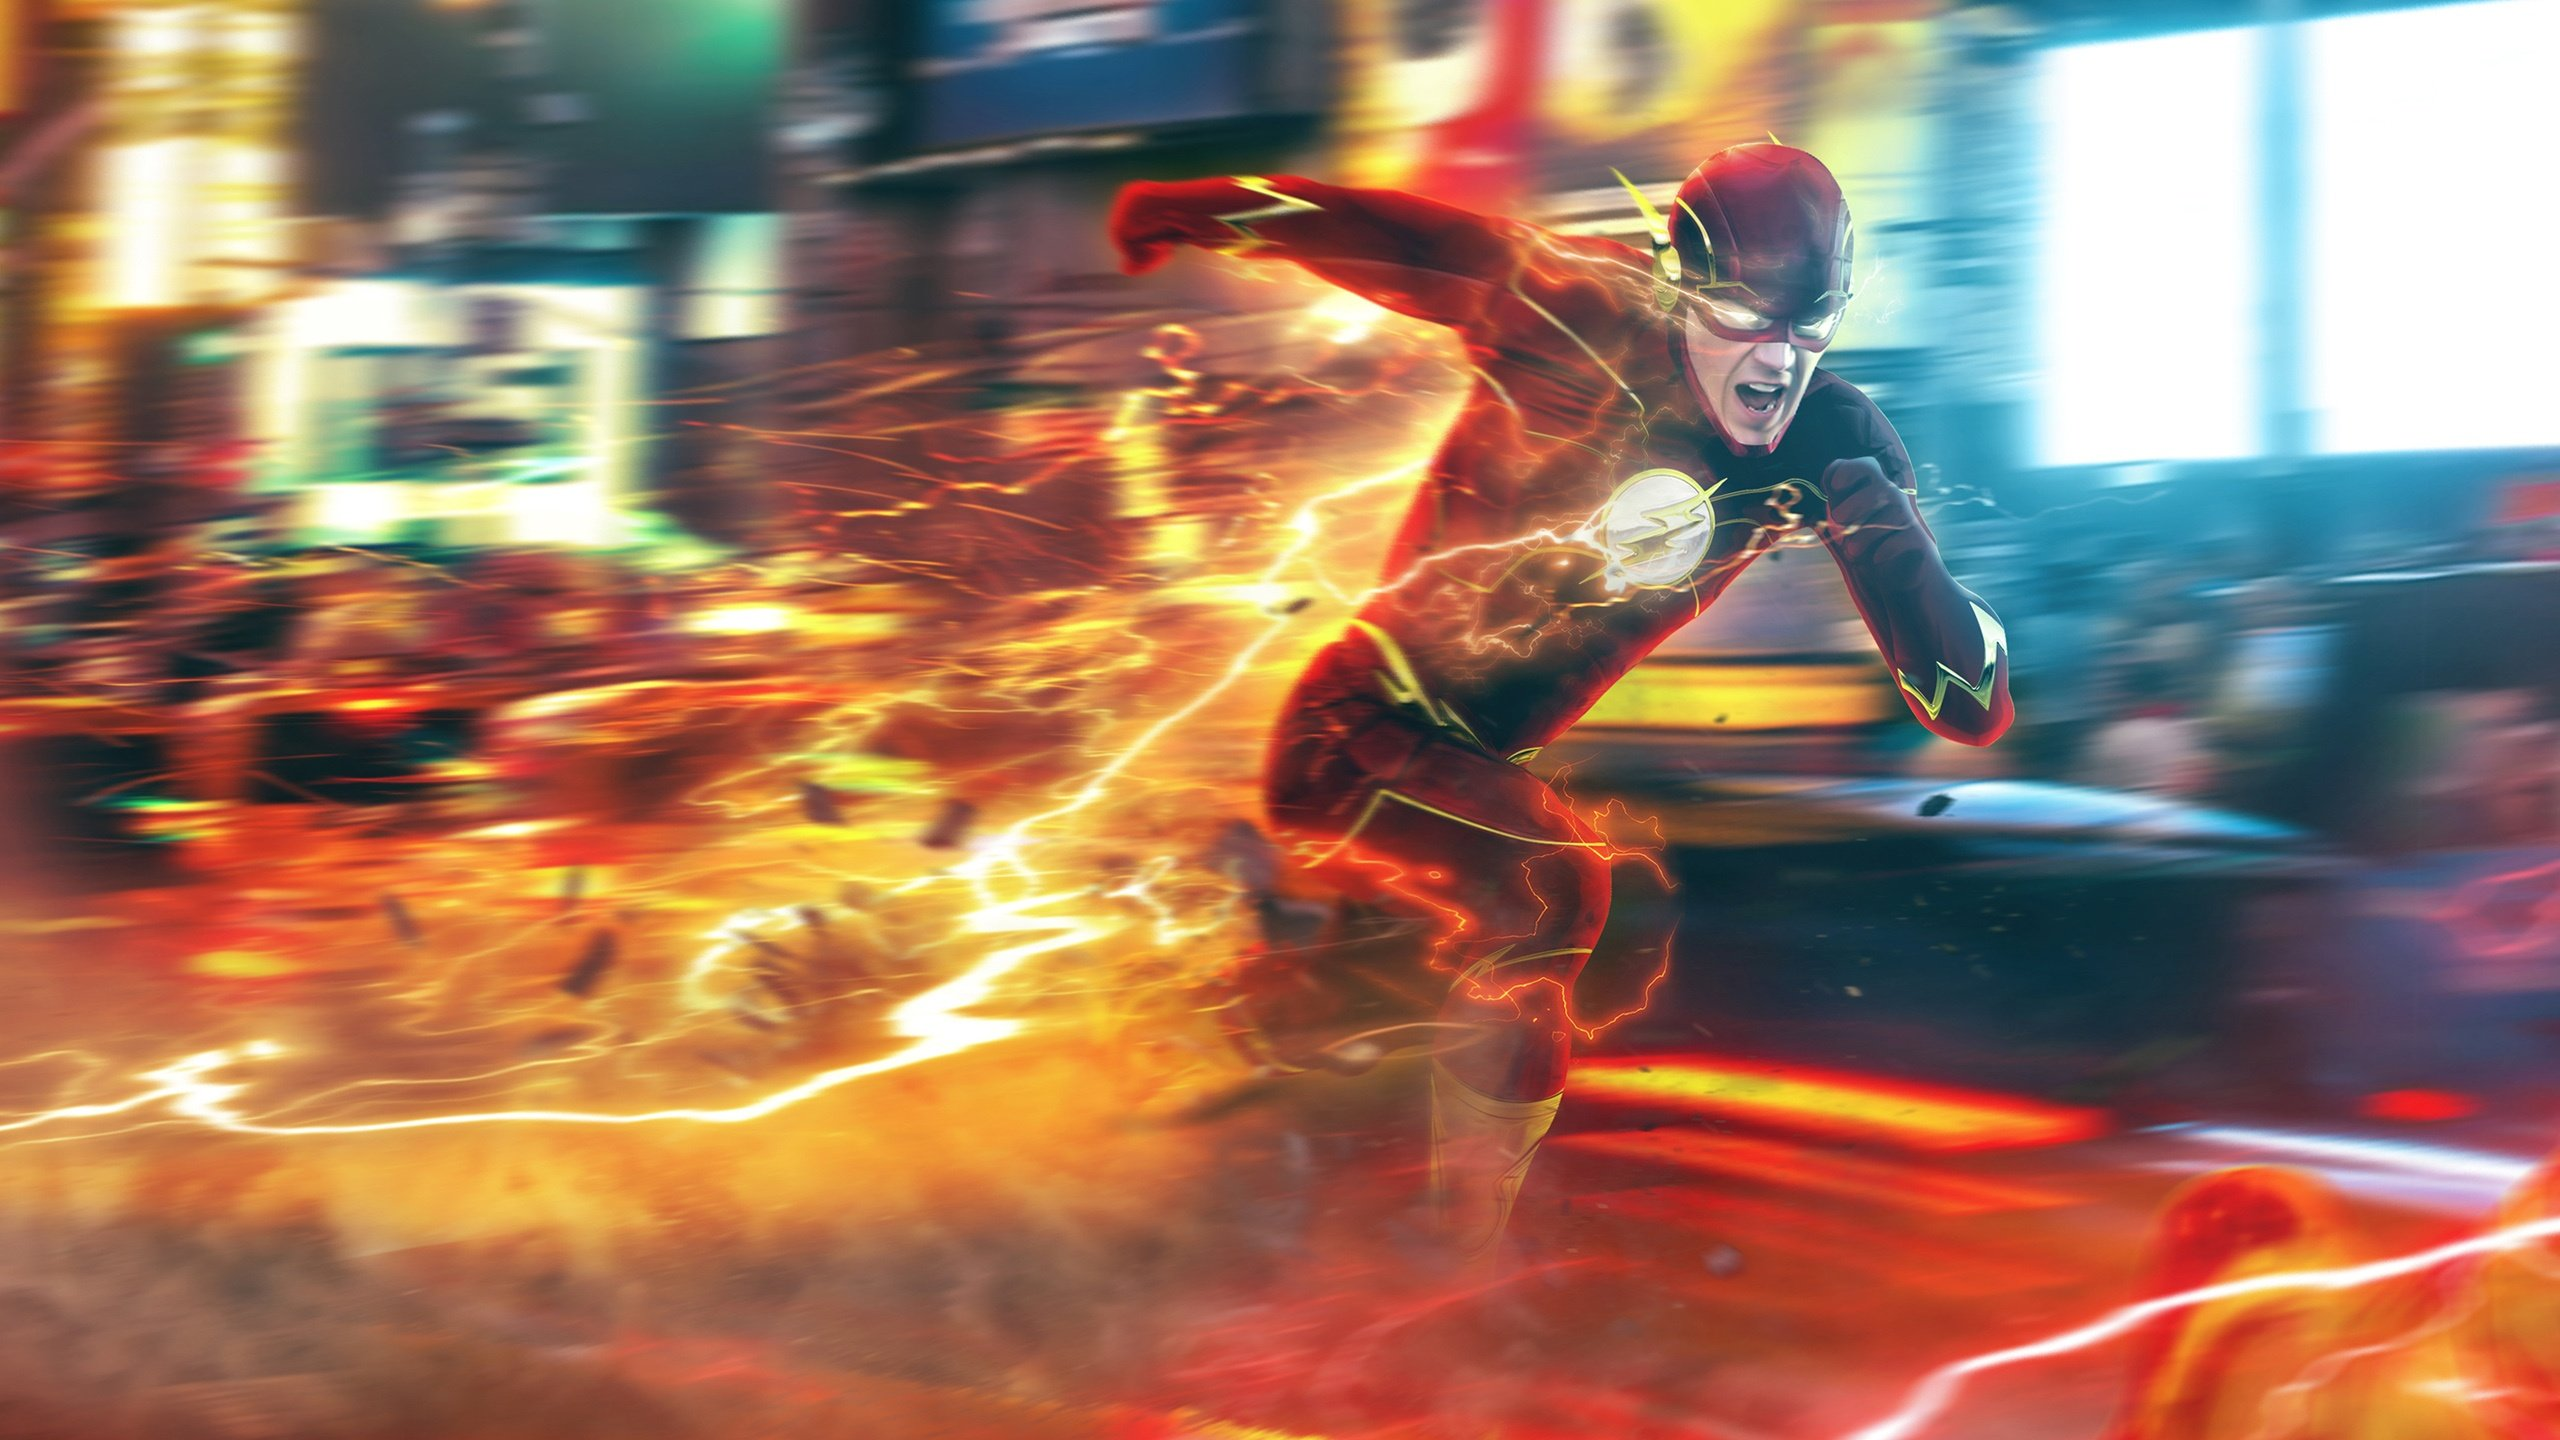 Best Flash Wallpaper 3d: Wallpaper Wallpapers And Desktop Backgrounds Up To 8K